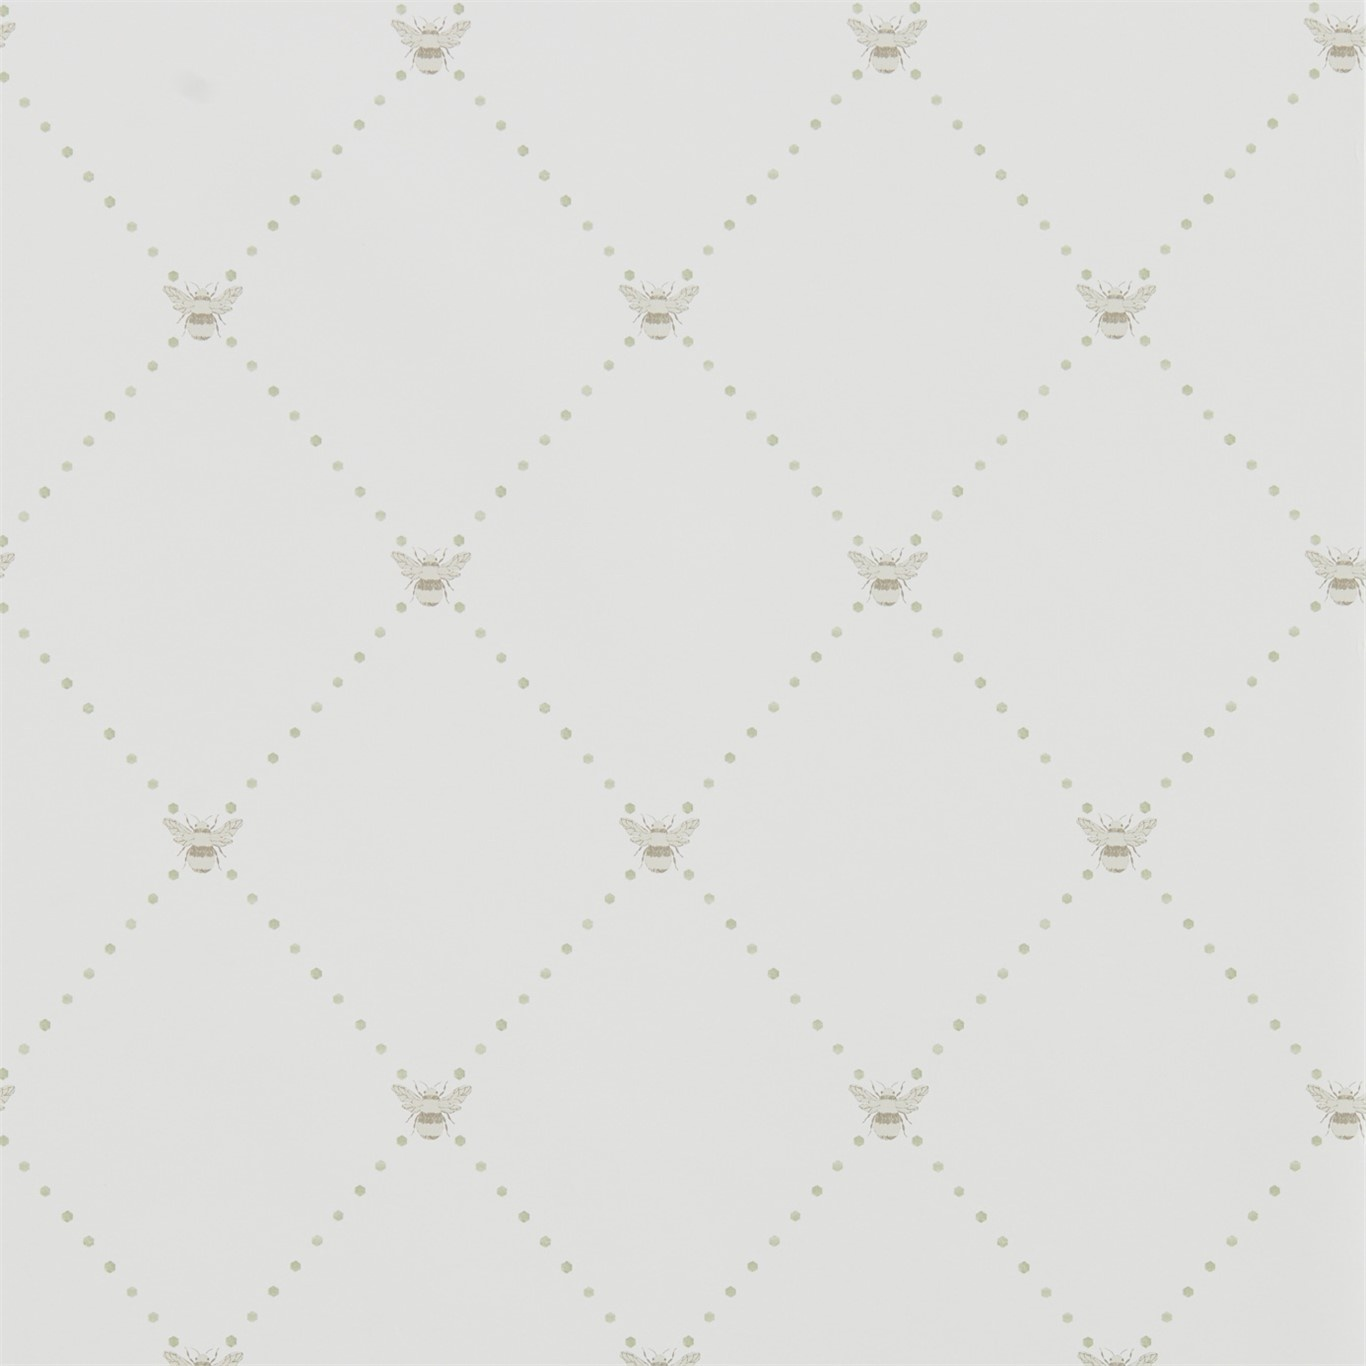 Image of Sanderson Home Nectar Celadon/Flint Wallpaper 216355